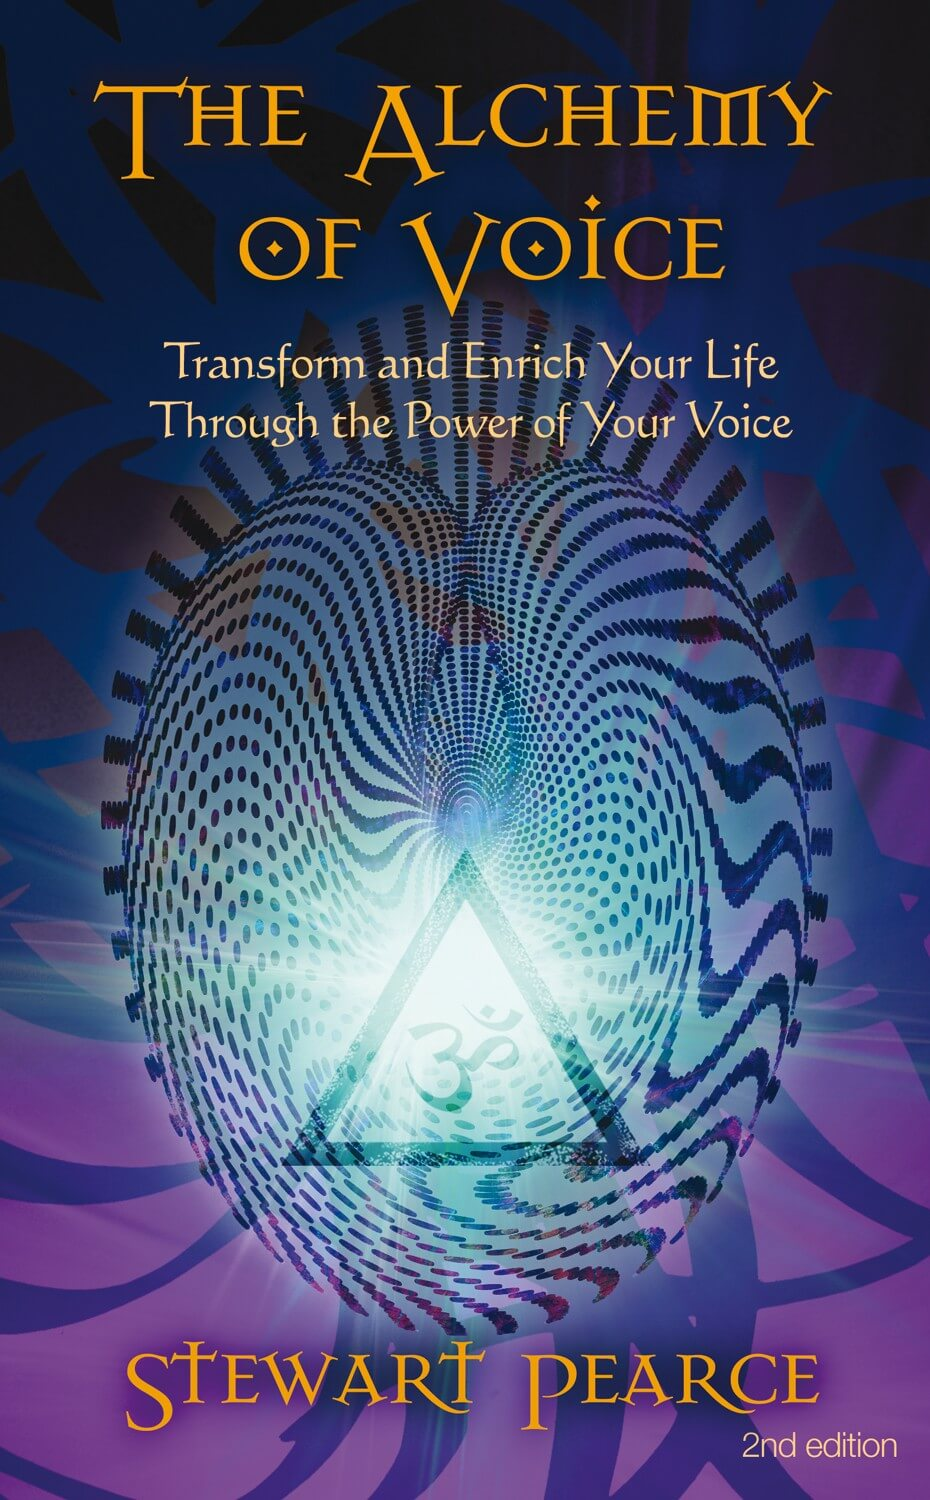 ALCHEMY OF VOICE BOOK IMG - DIANA THE VOICE OF CHANGE